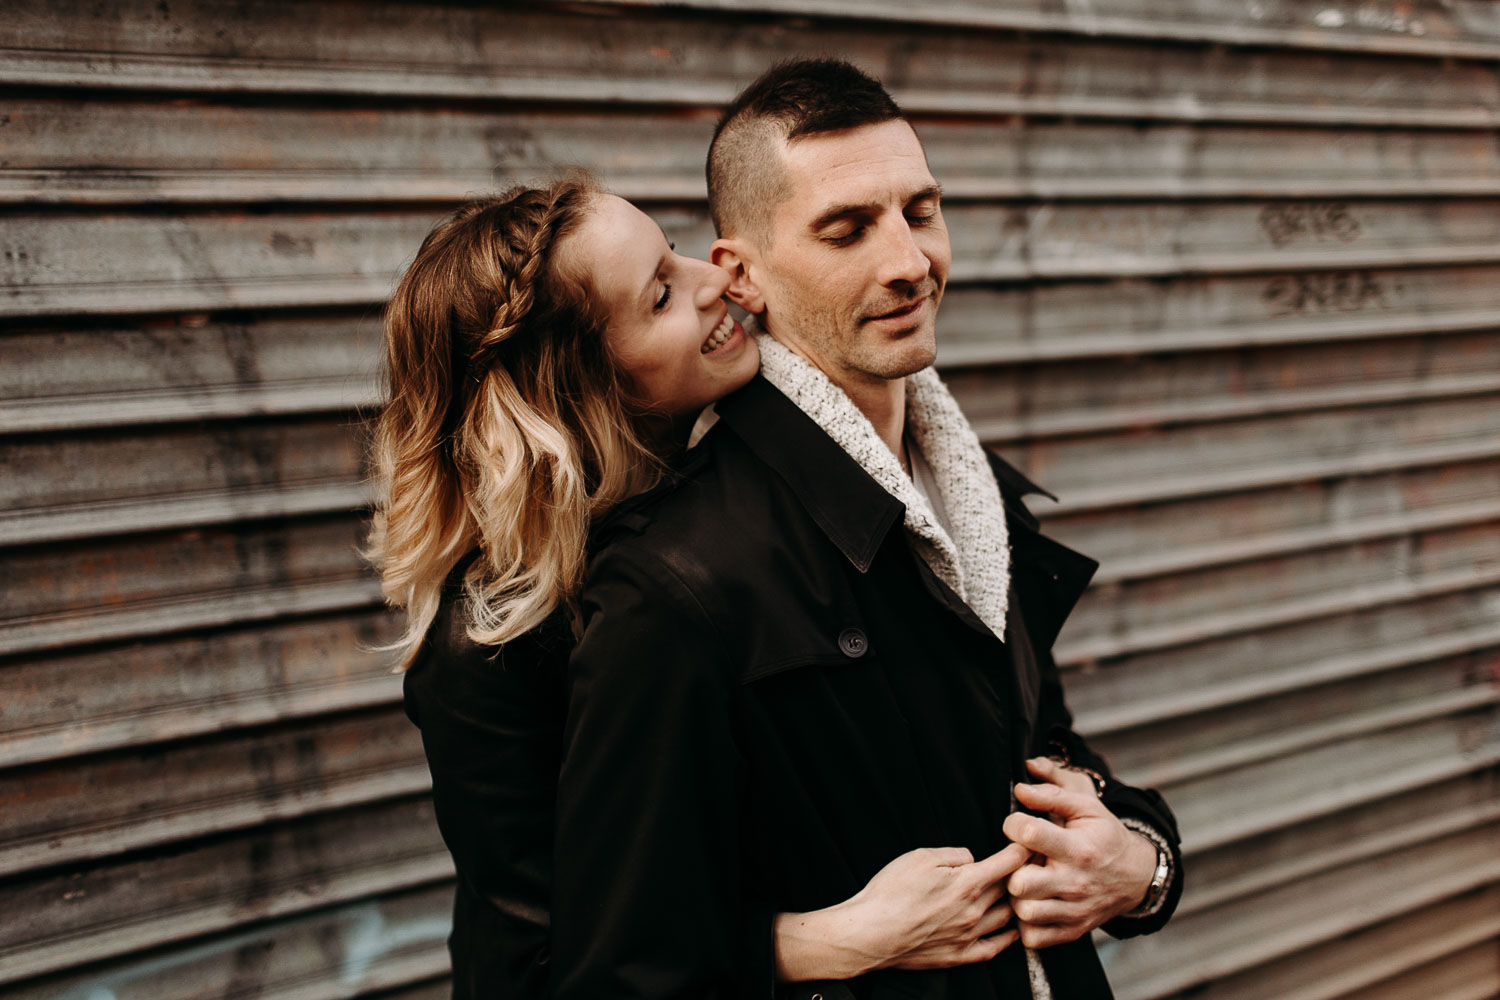 seance-couple-vieux-lille-engagement-photographe-lifestyle-nord-25